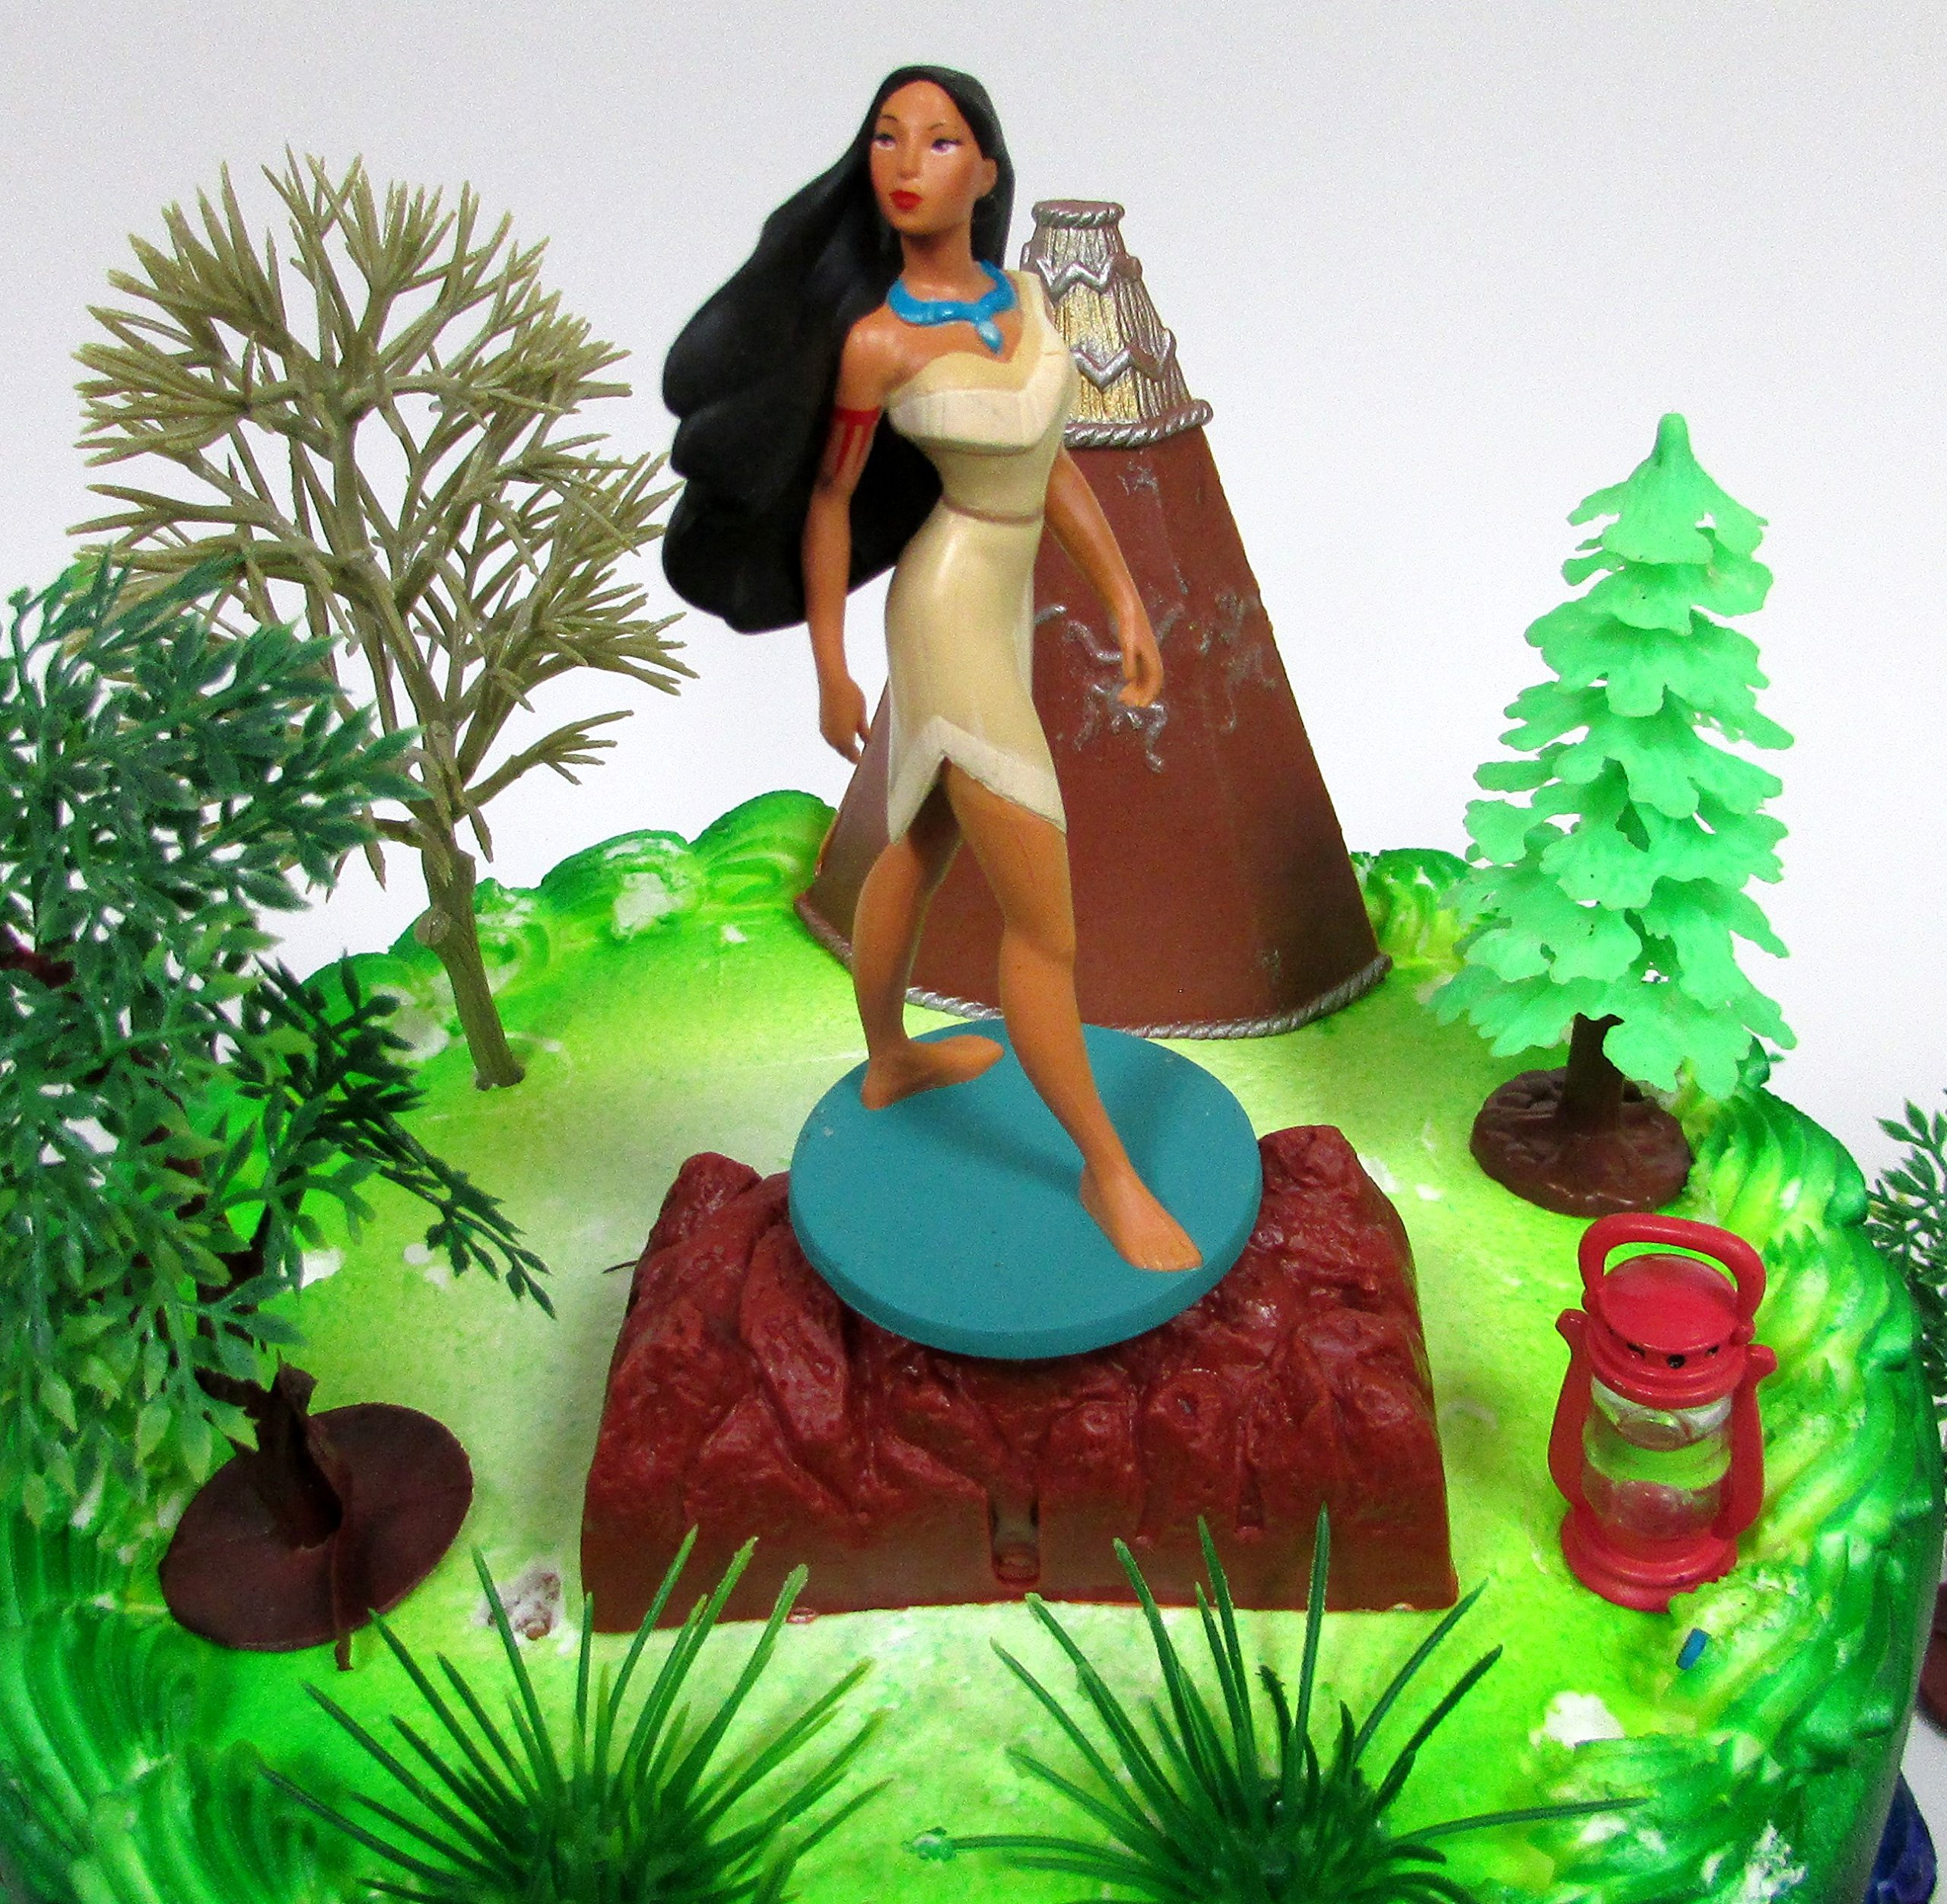 Pocahontas Themed PRINCESS POCAHONTAS Birthday Cake Topper Set Featuring Pocahontas Figure and Decorative Accessories by Cake Toppers (Image #3)